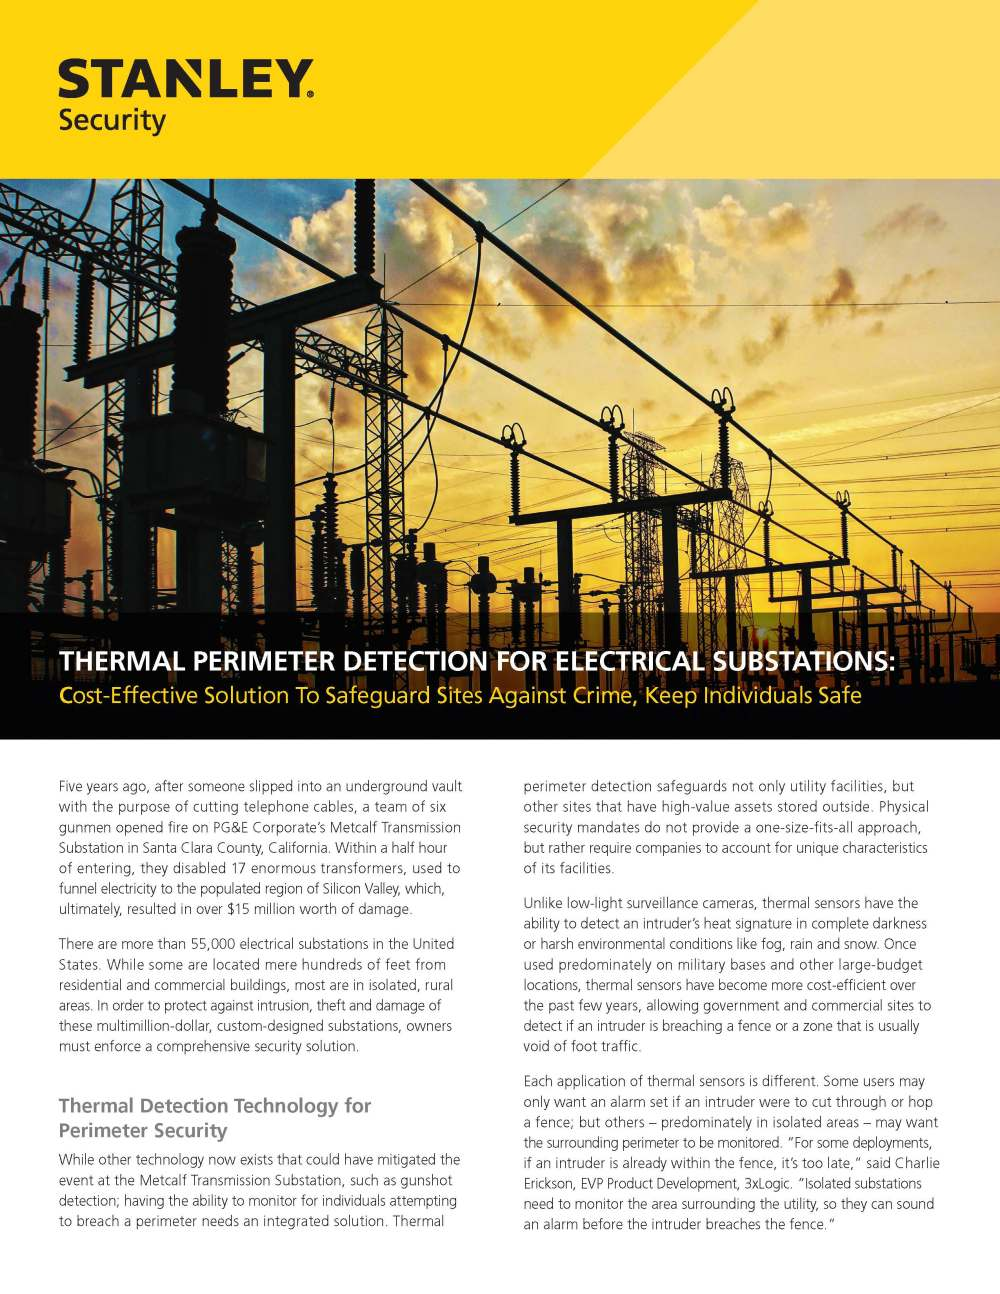 medium resolution of thermal perimeter detection for electrical substations